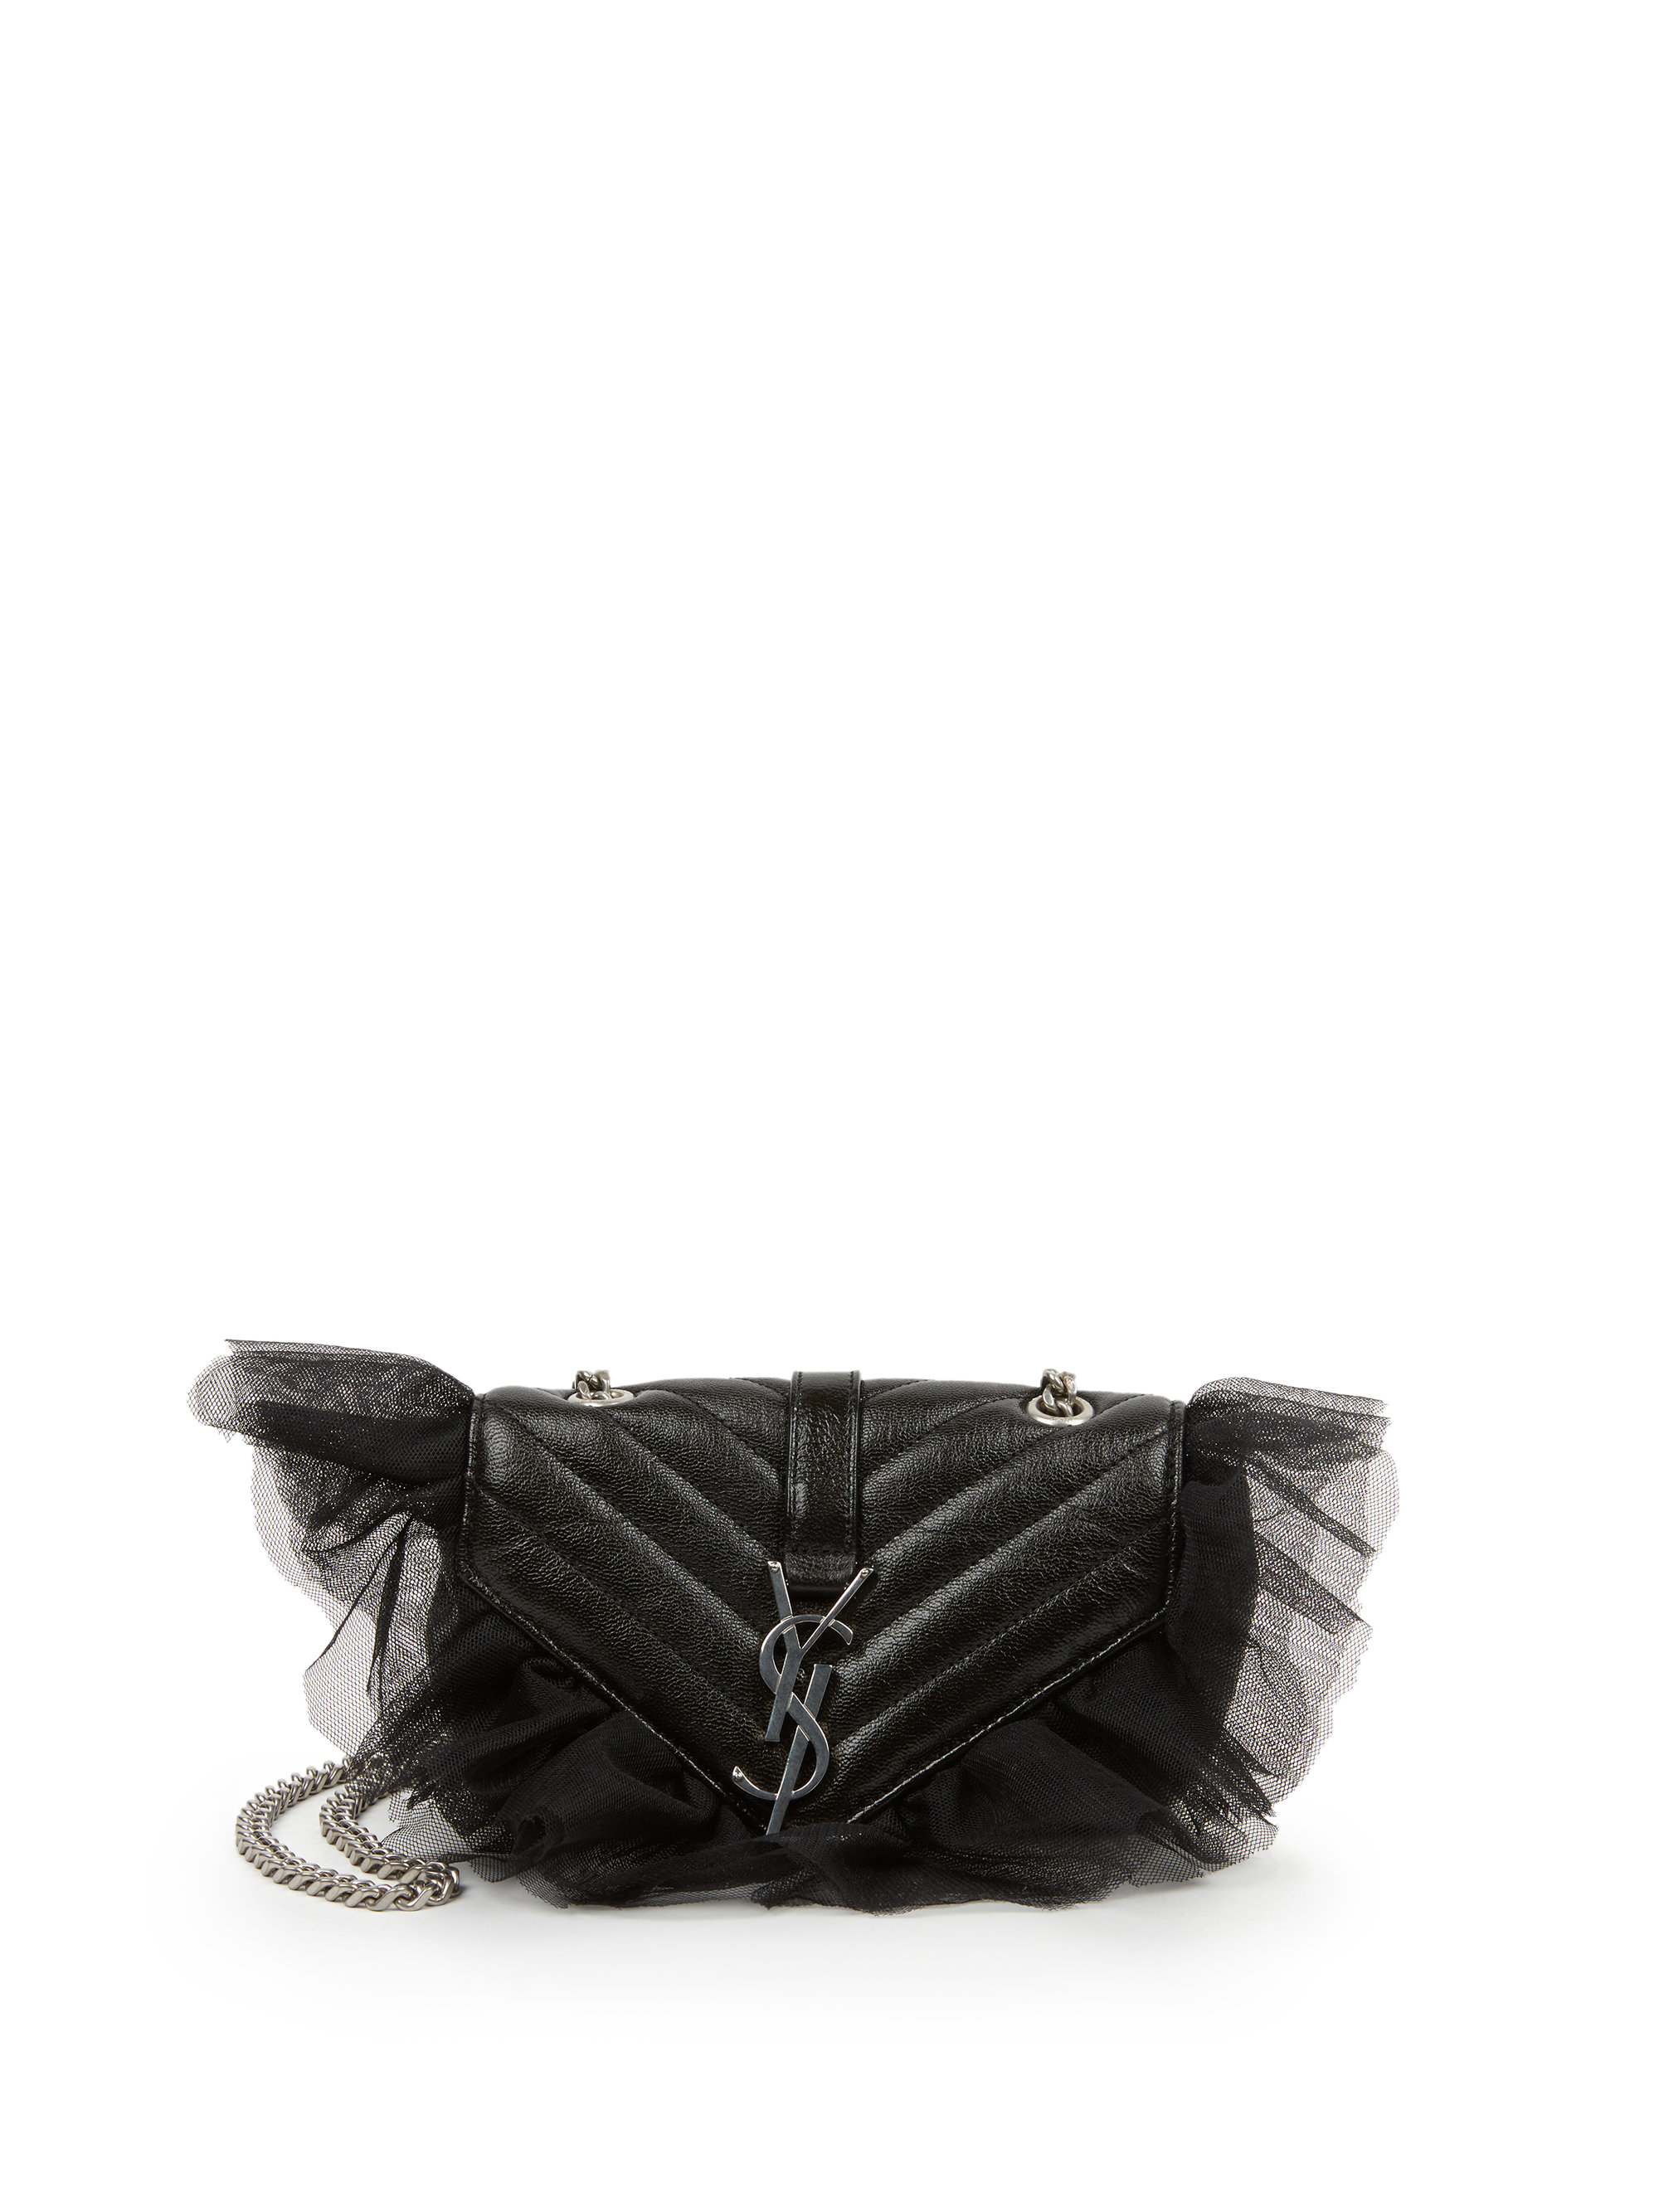 ysl cabas chyc large - Saint laurent Monogram Baby Matelasse Leather & Tulle Crossbody ...